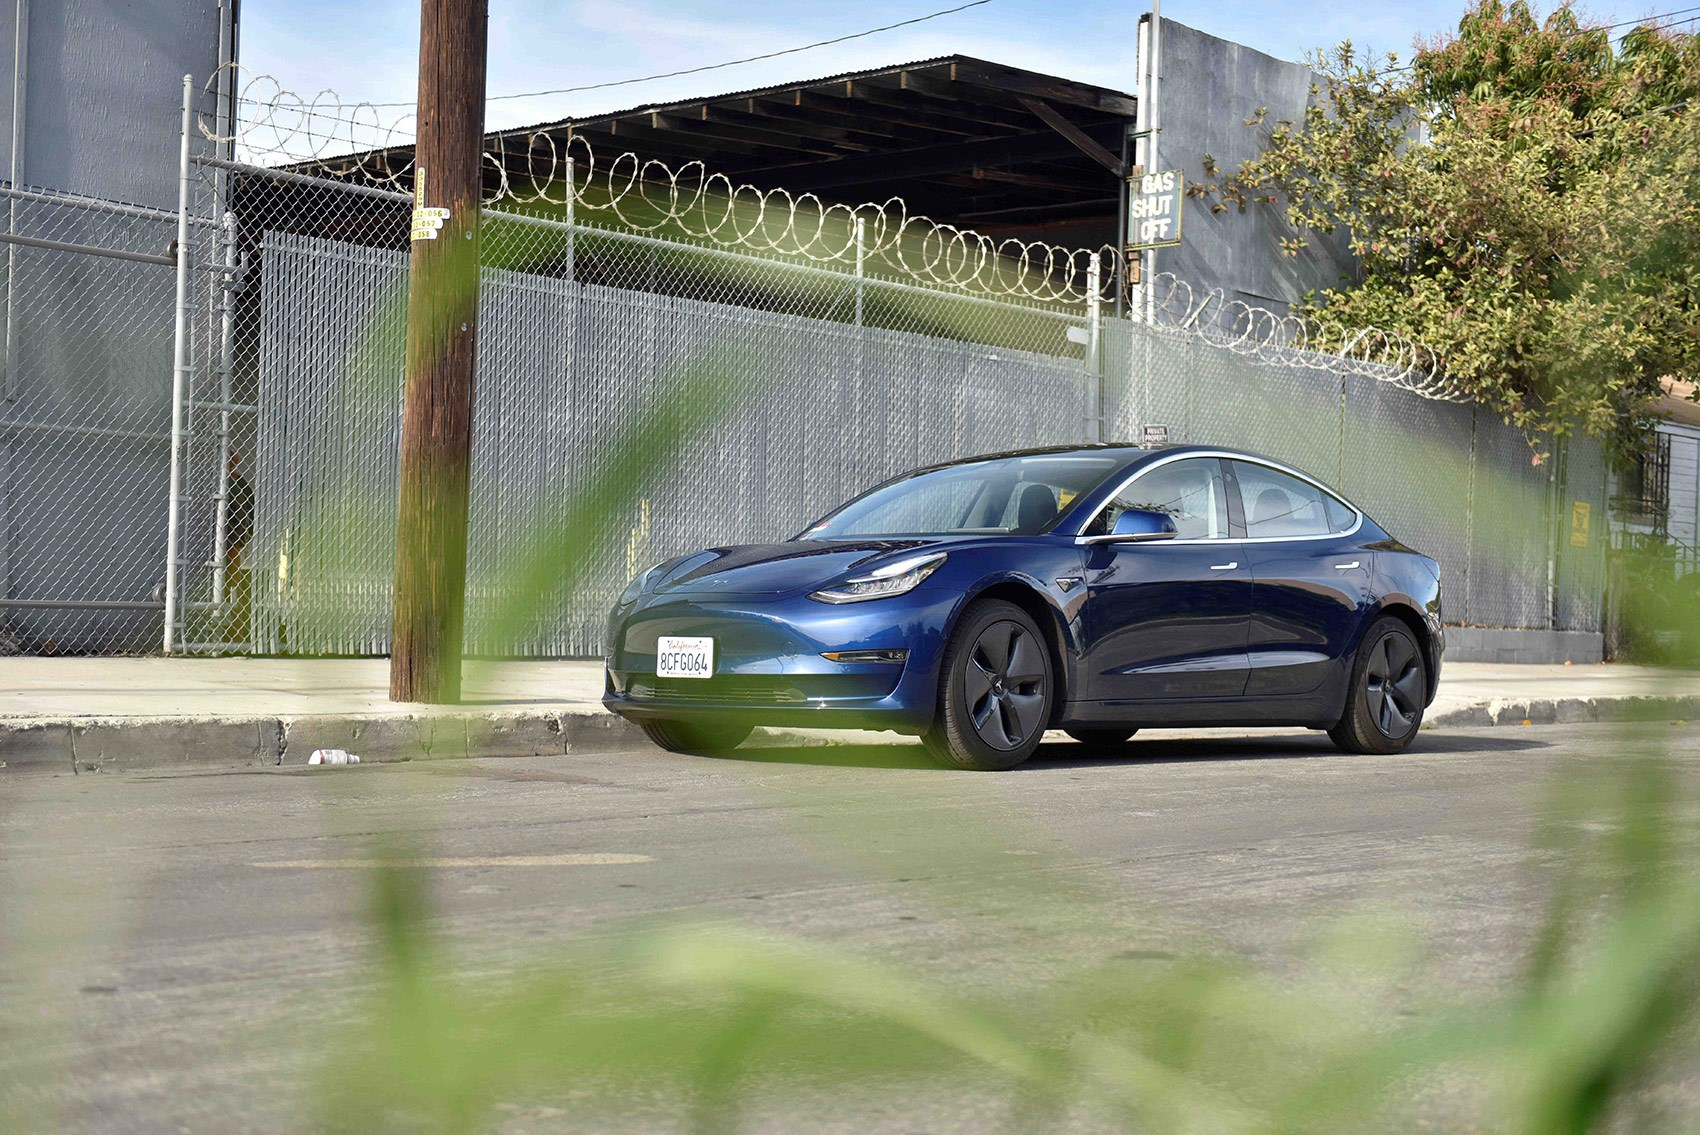 Tesla Model 3: full review, specs and prices by CAR magazine UK